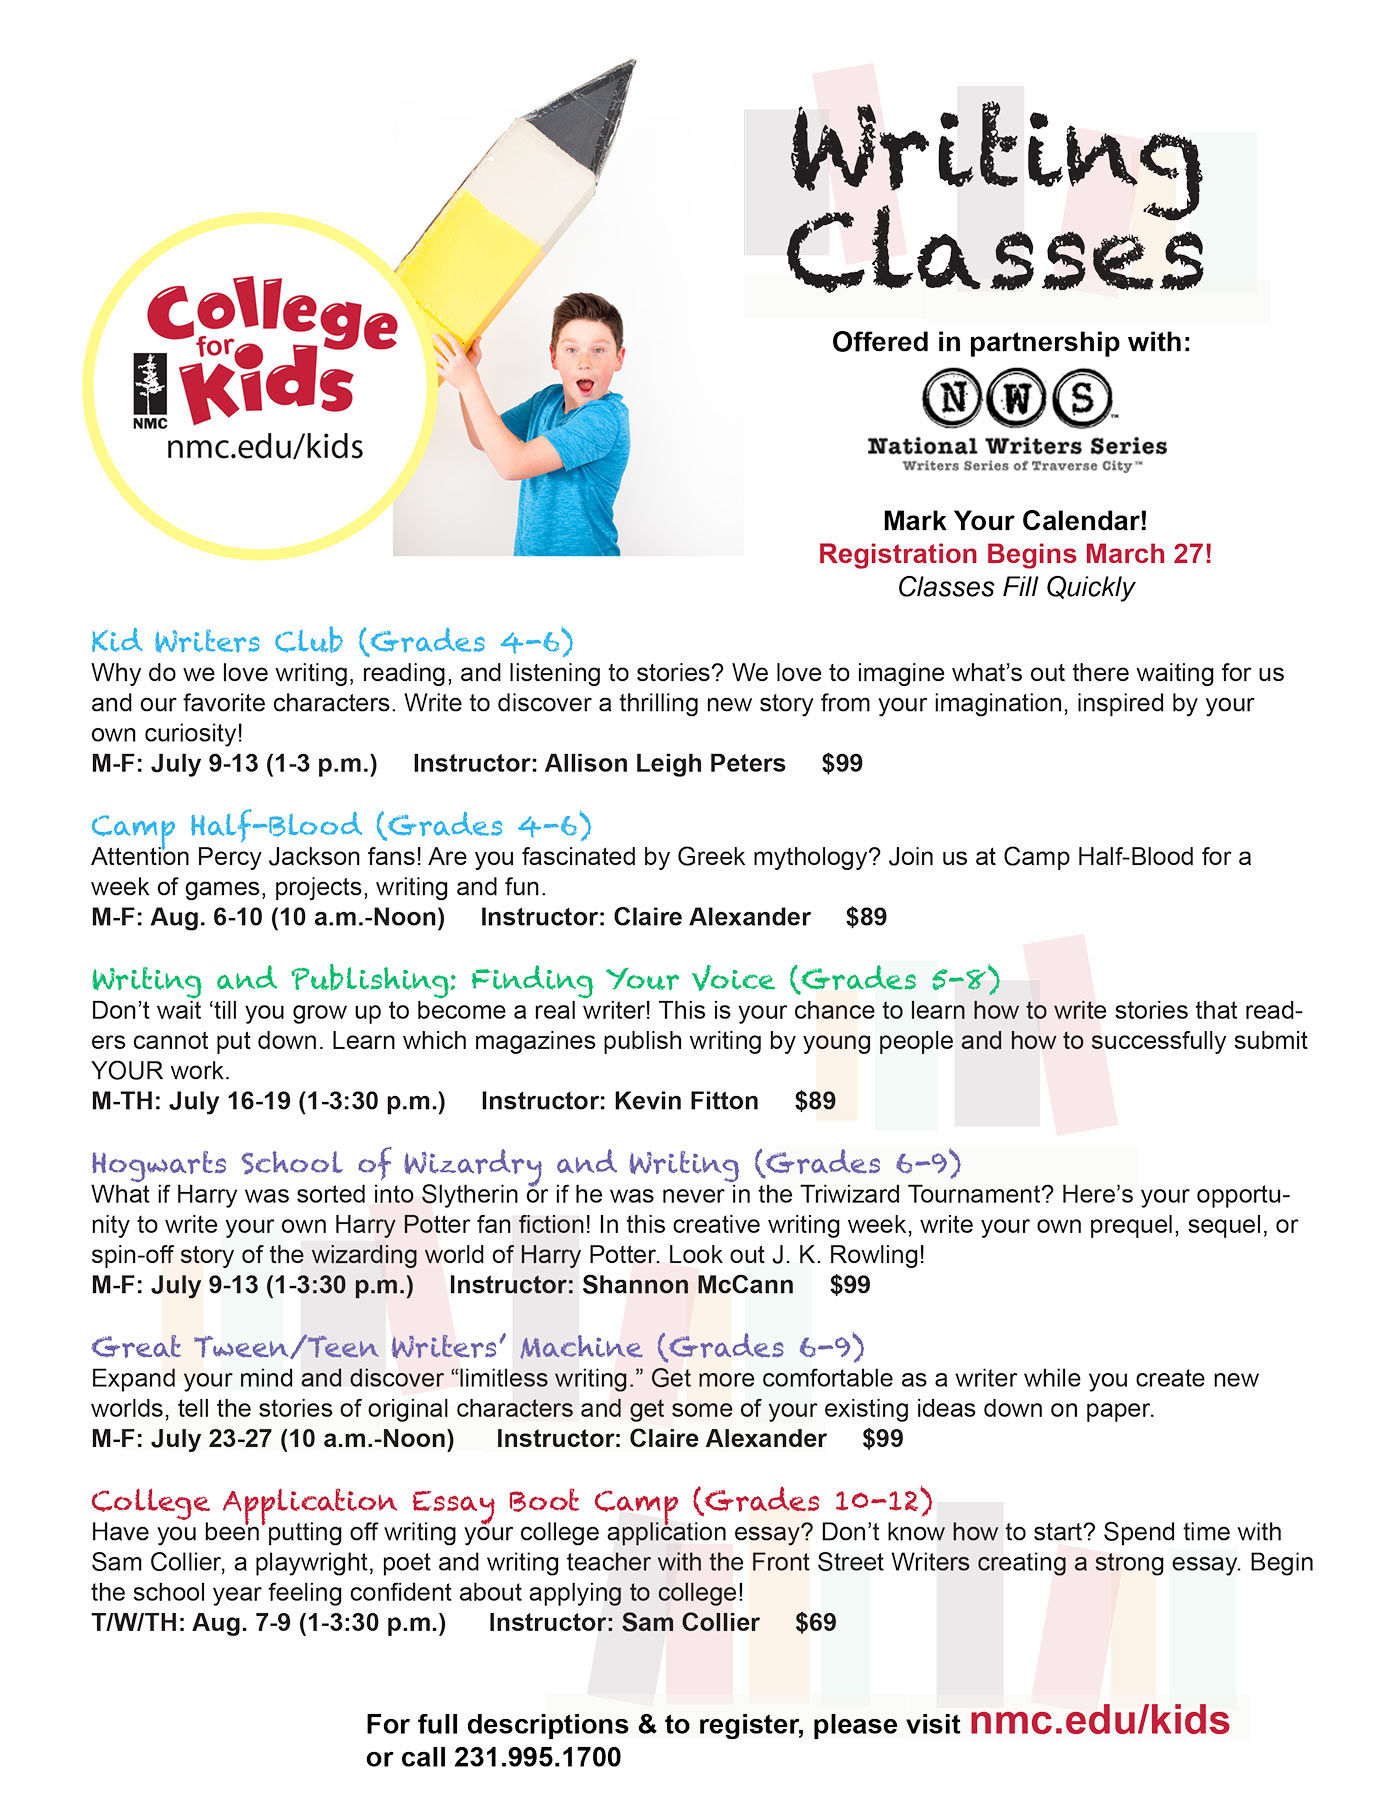 Sign up for classes on NMC for kids website!